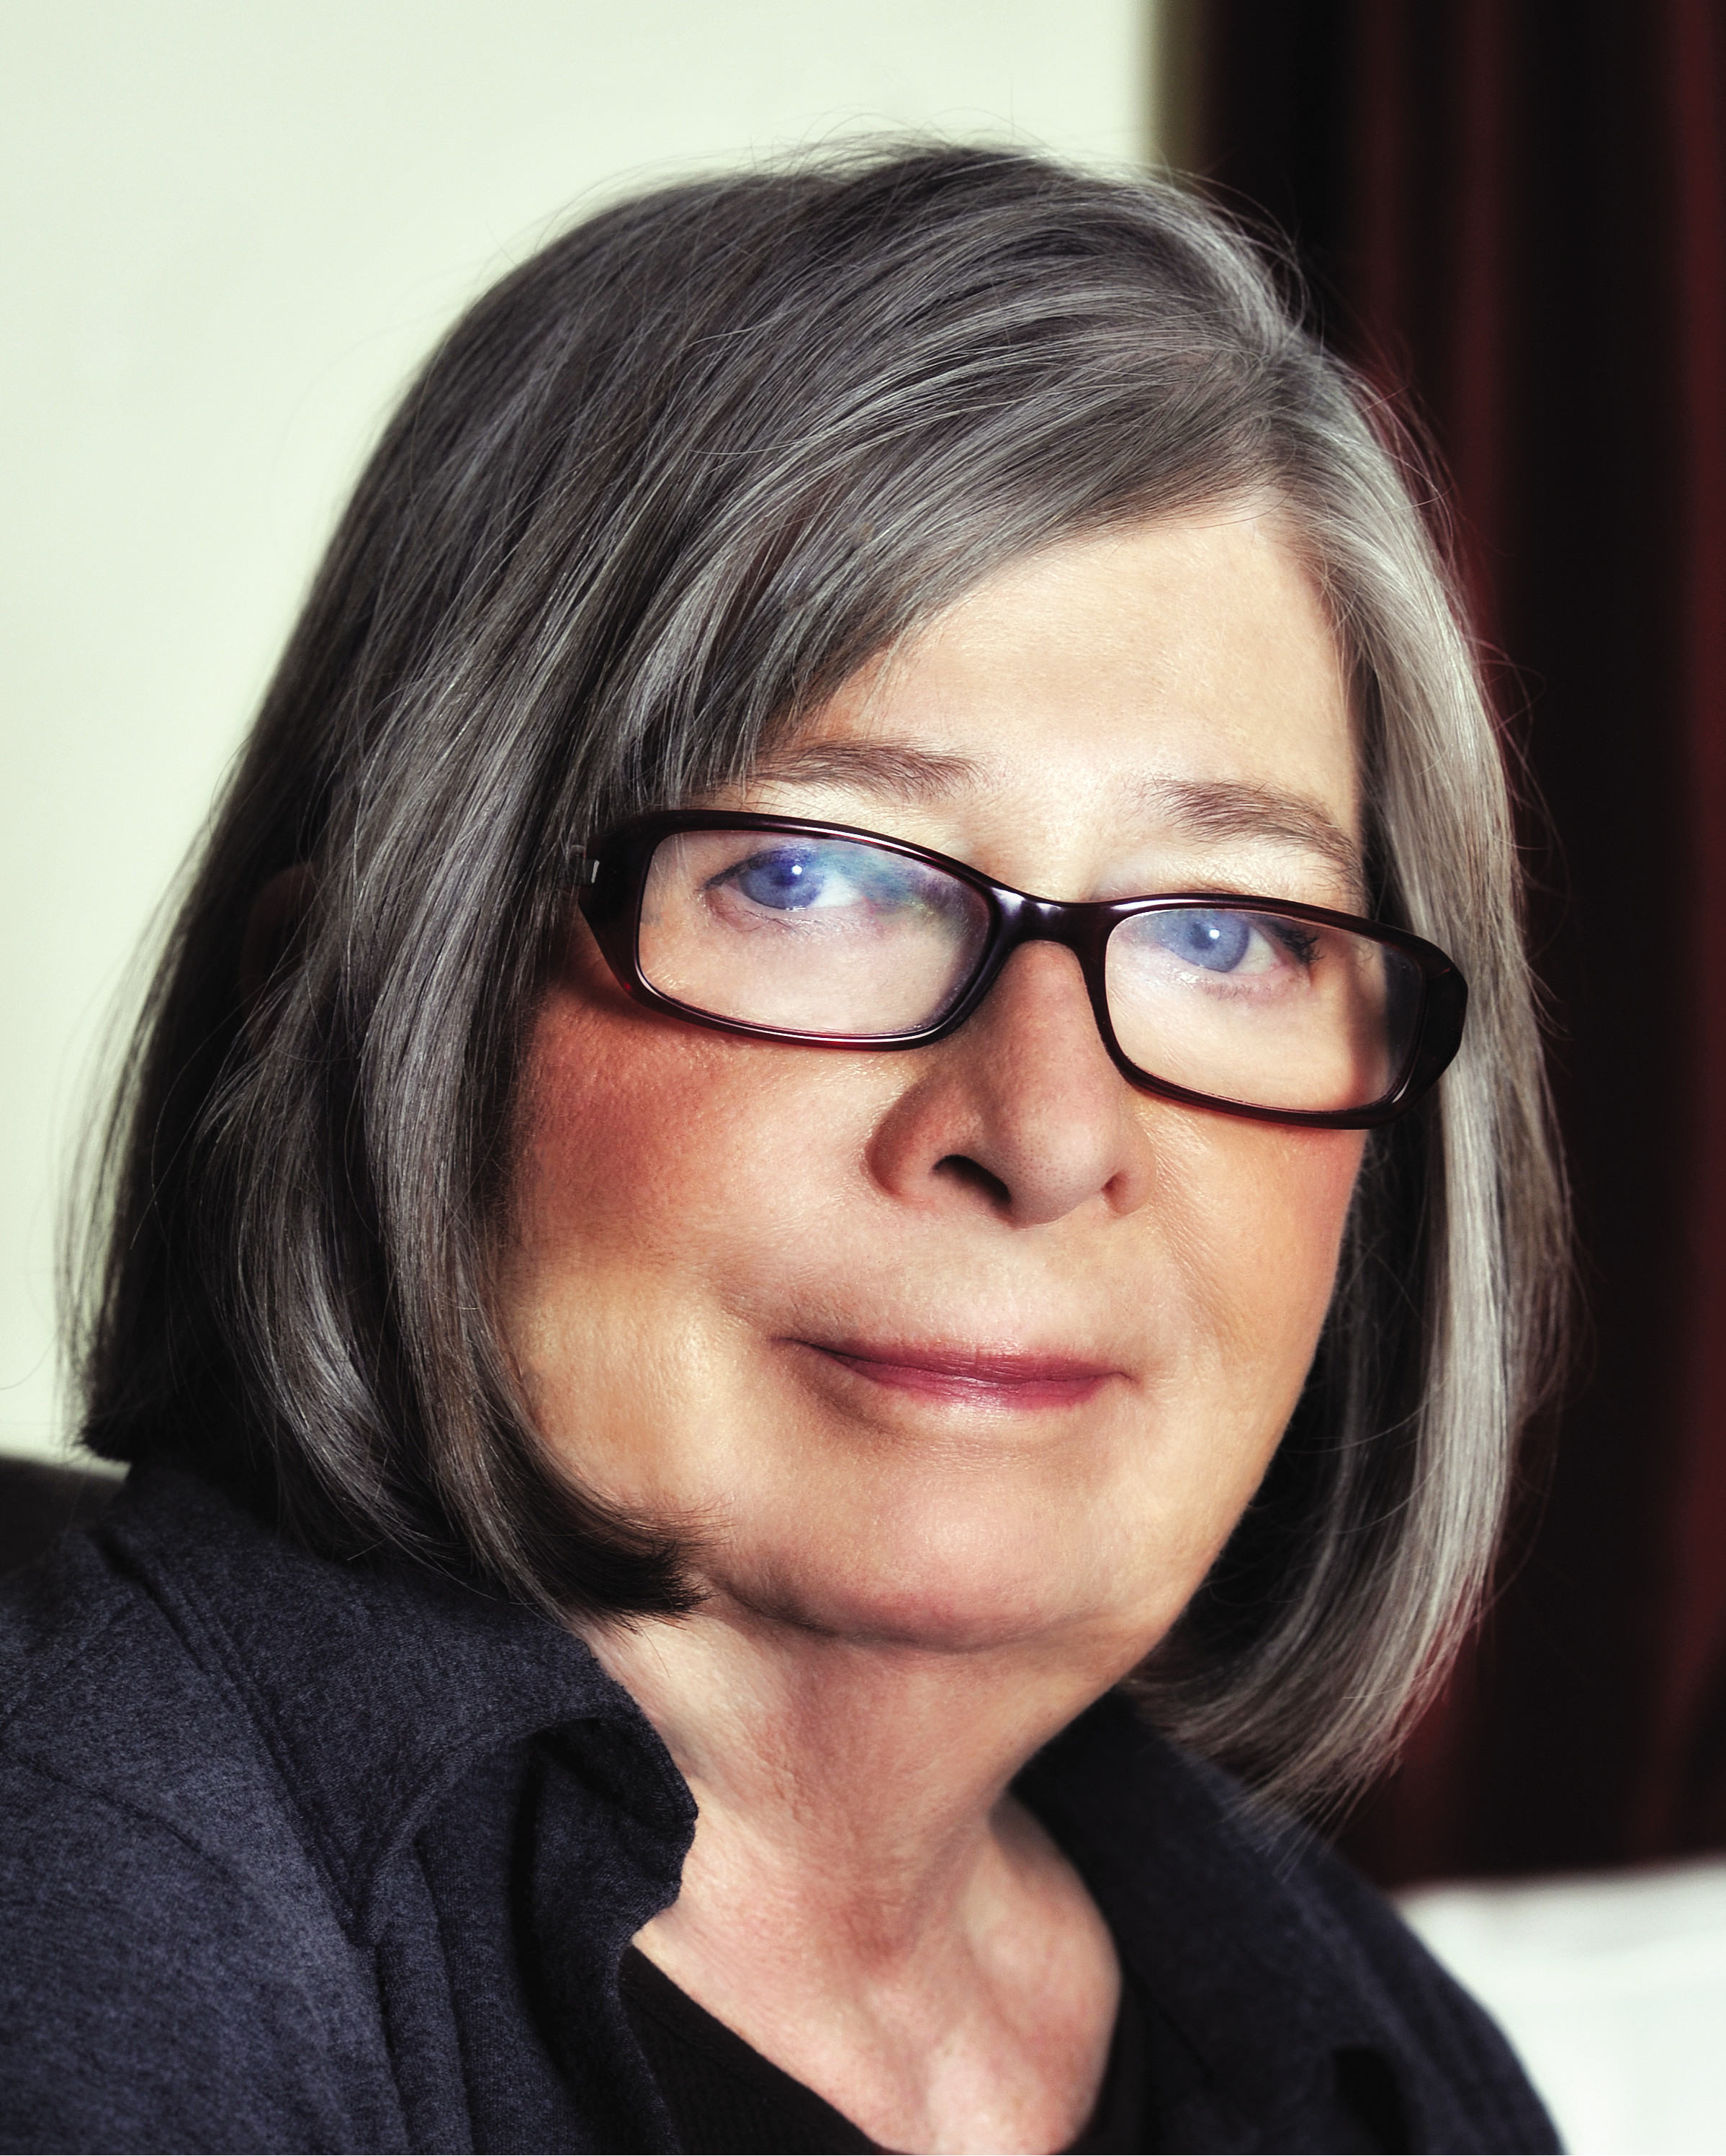 Barbara Ehrenreich is also the author of Nickel and Dimed, Dancing in the Streets, and Bright-sided.